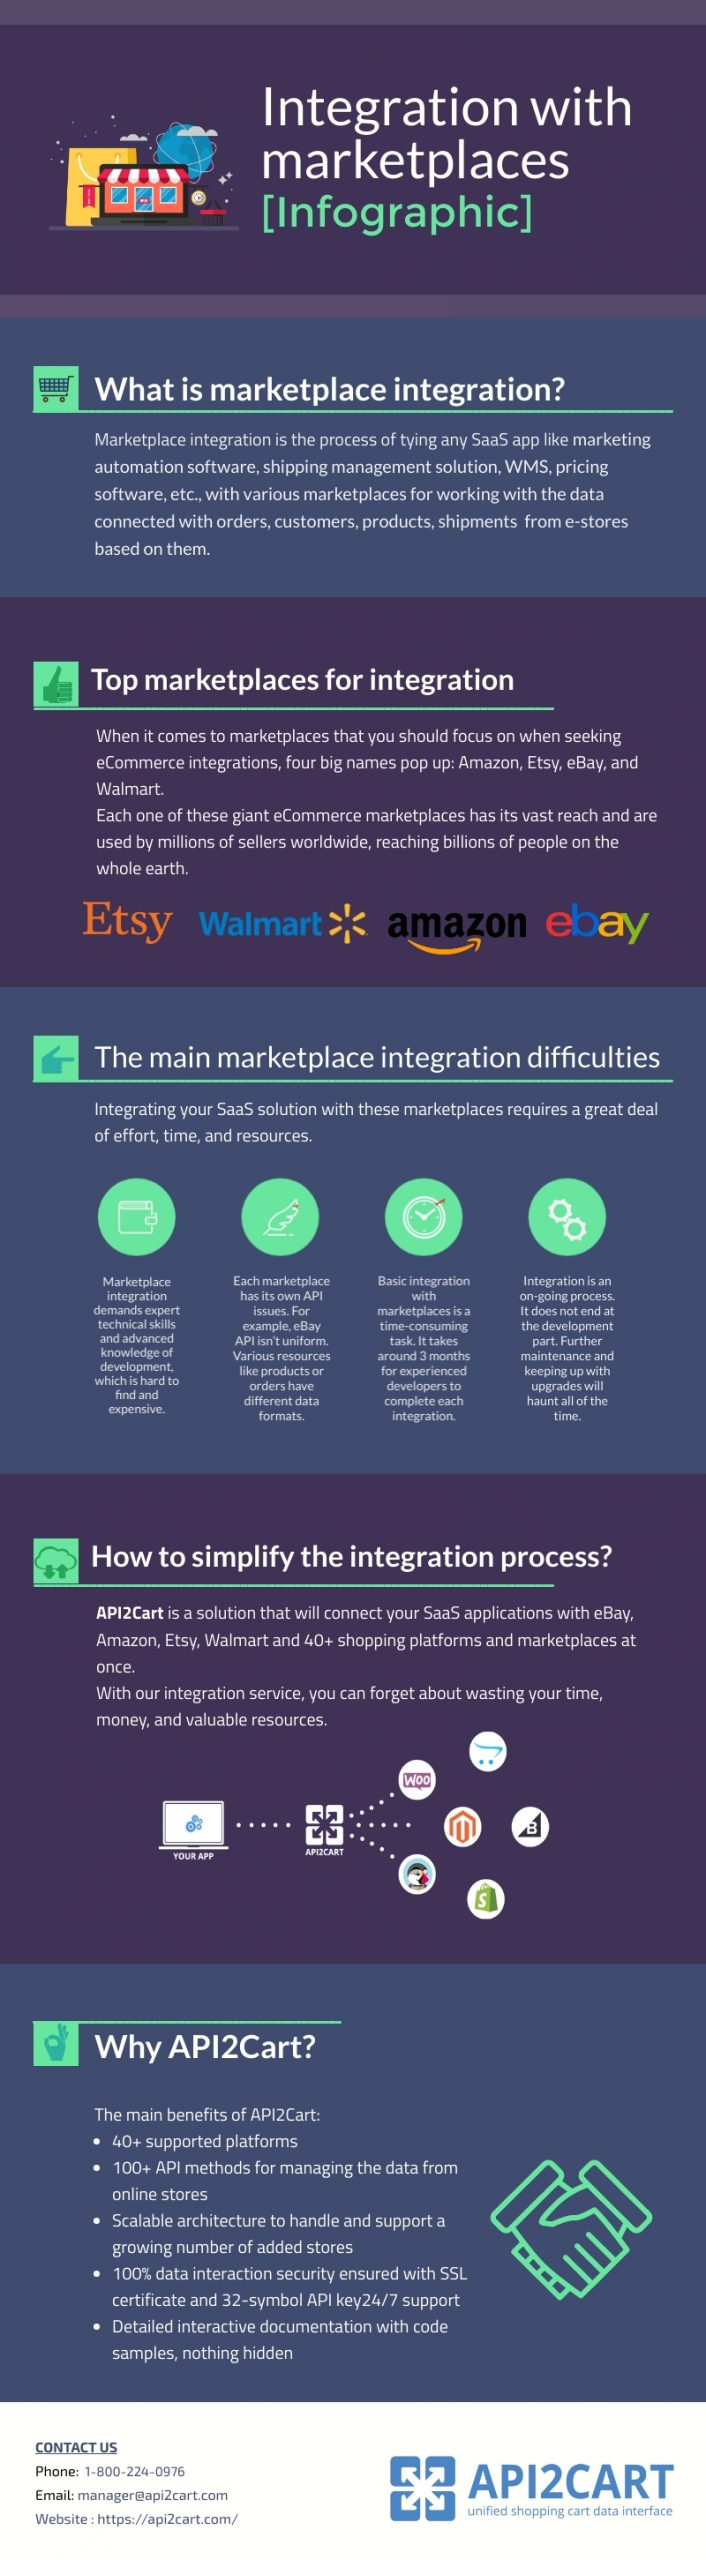 integration with marketplaces